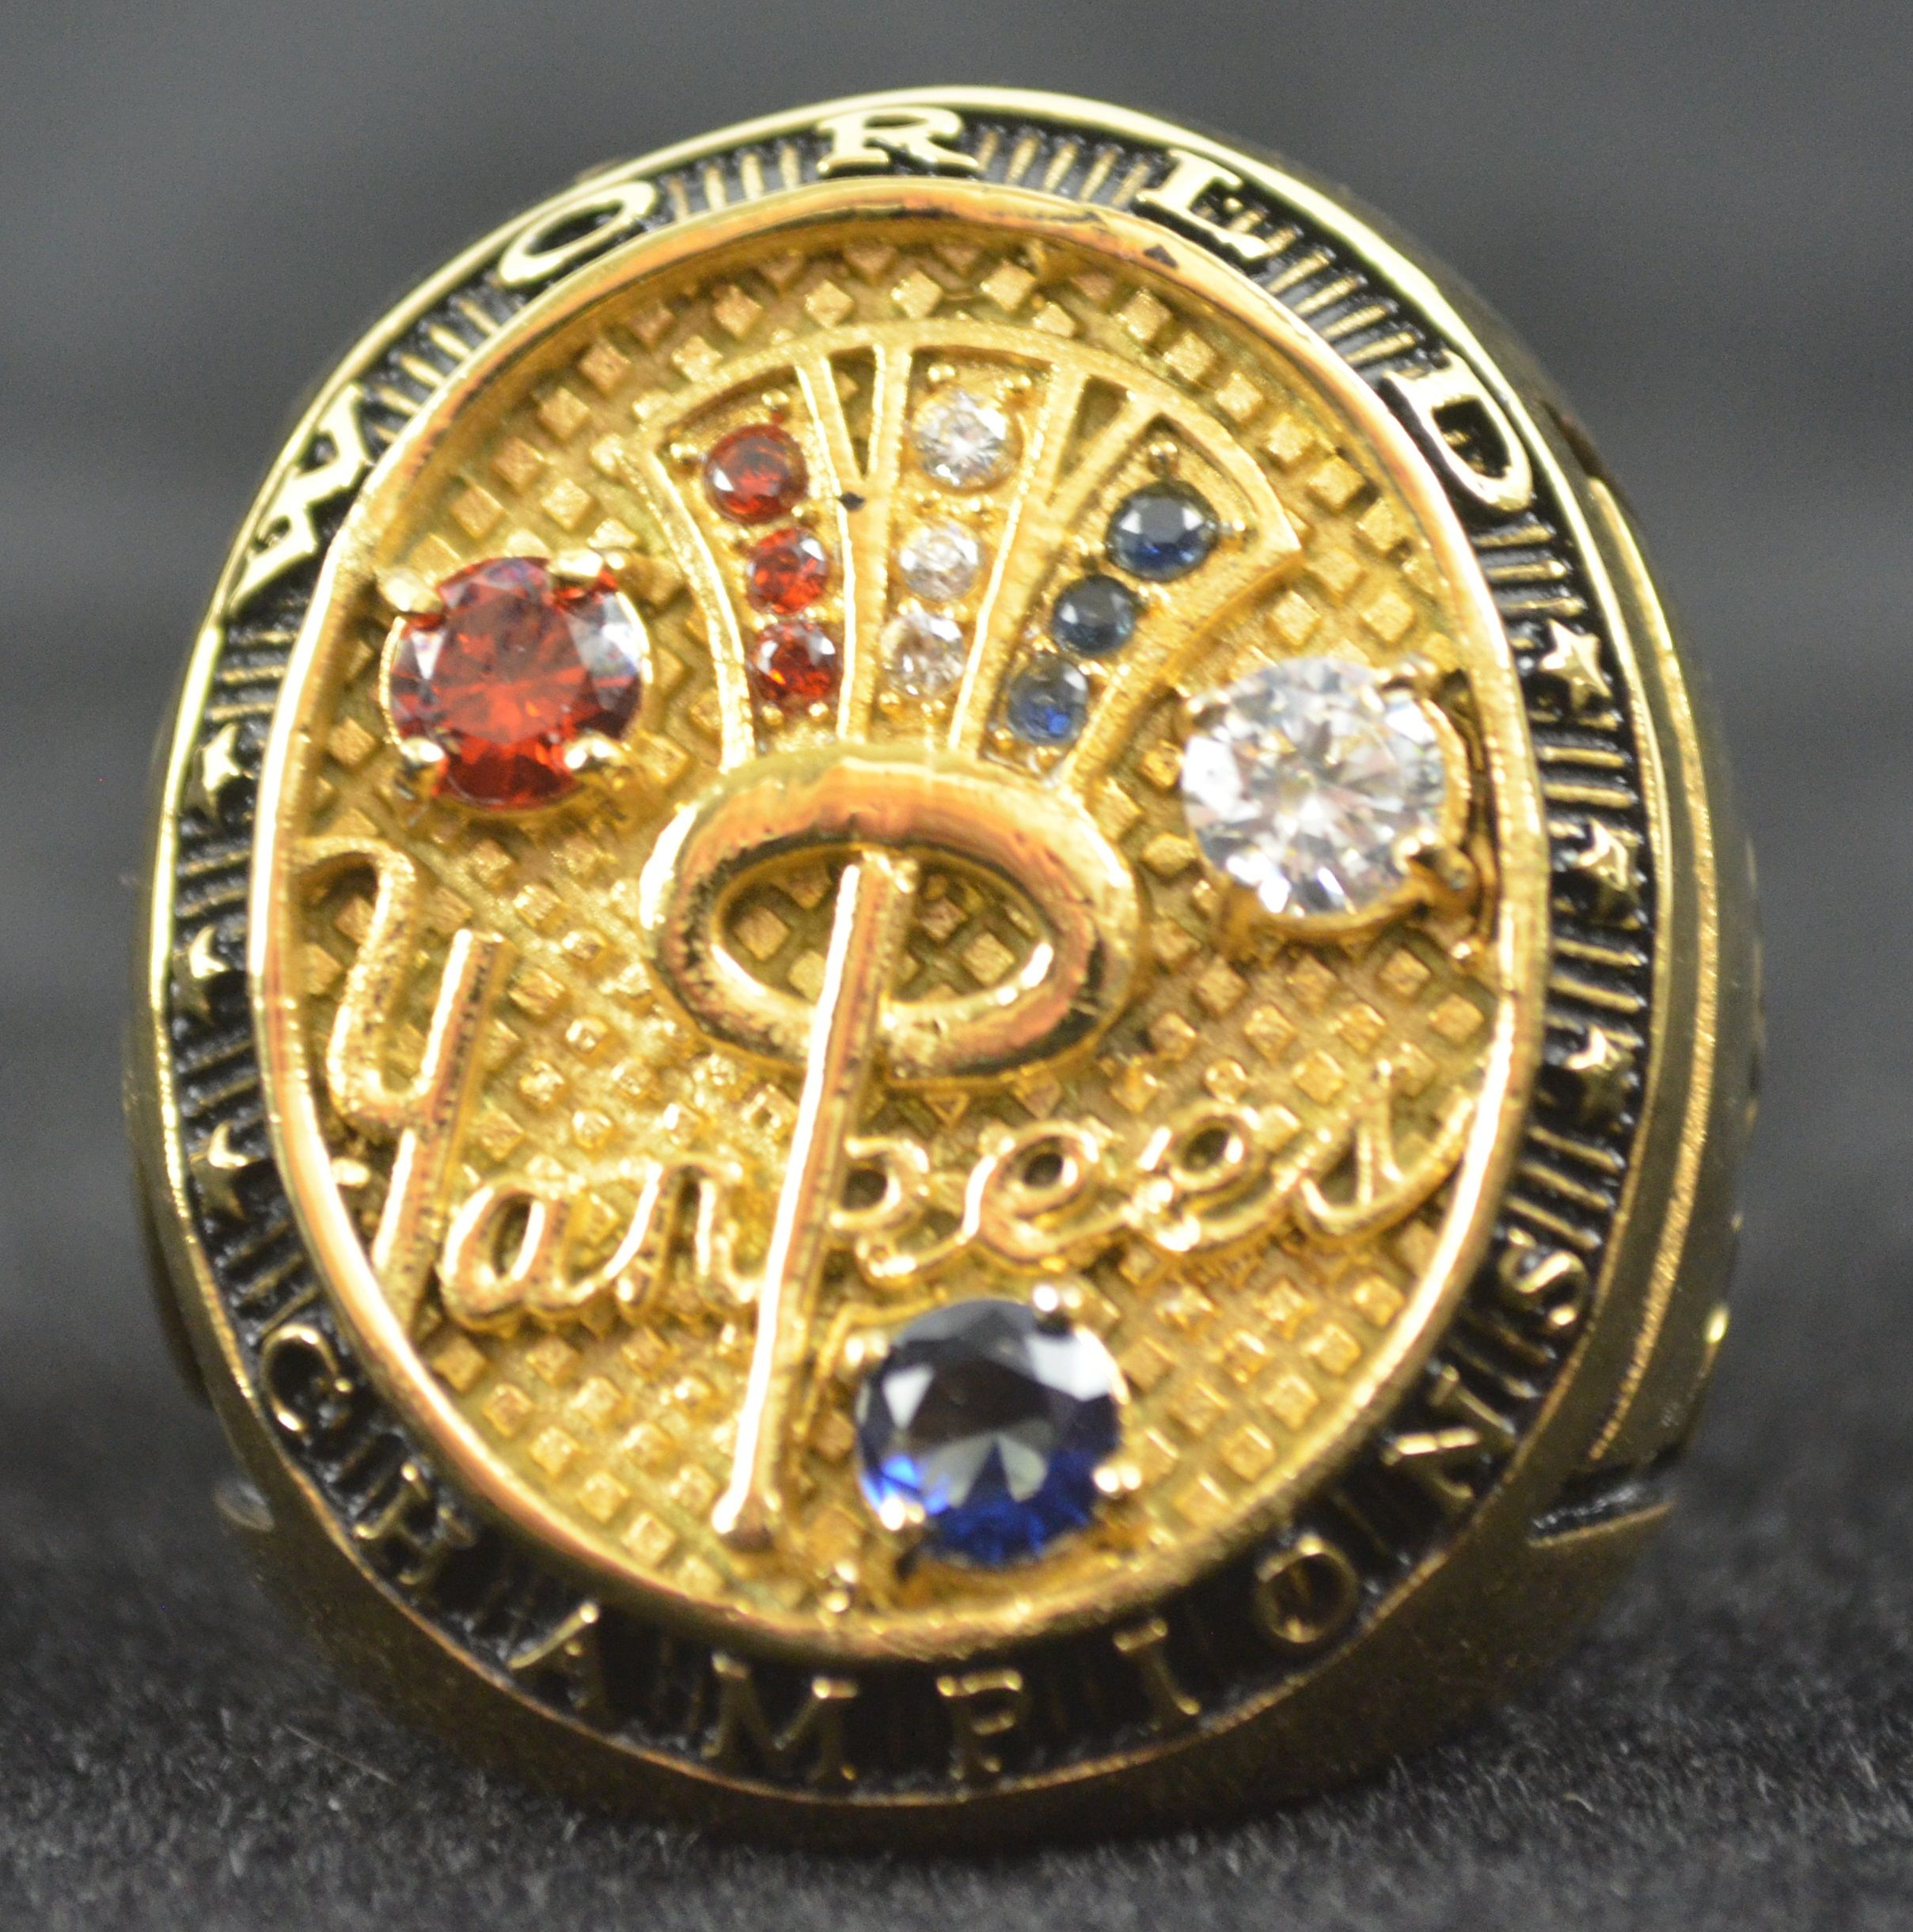 Replica Yankees World Series Rings